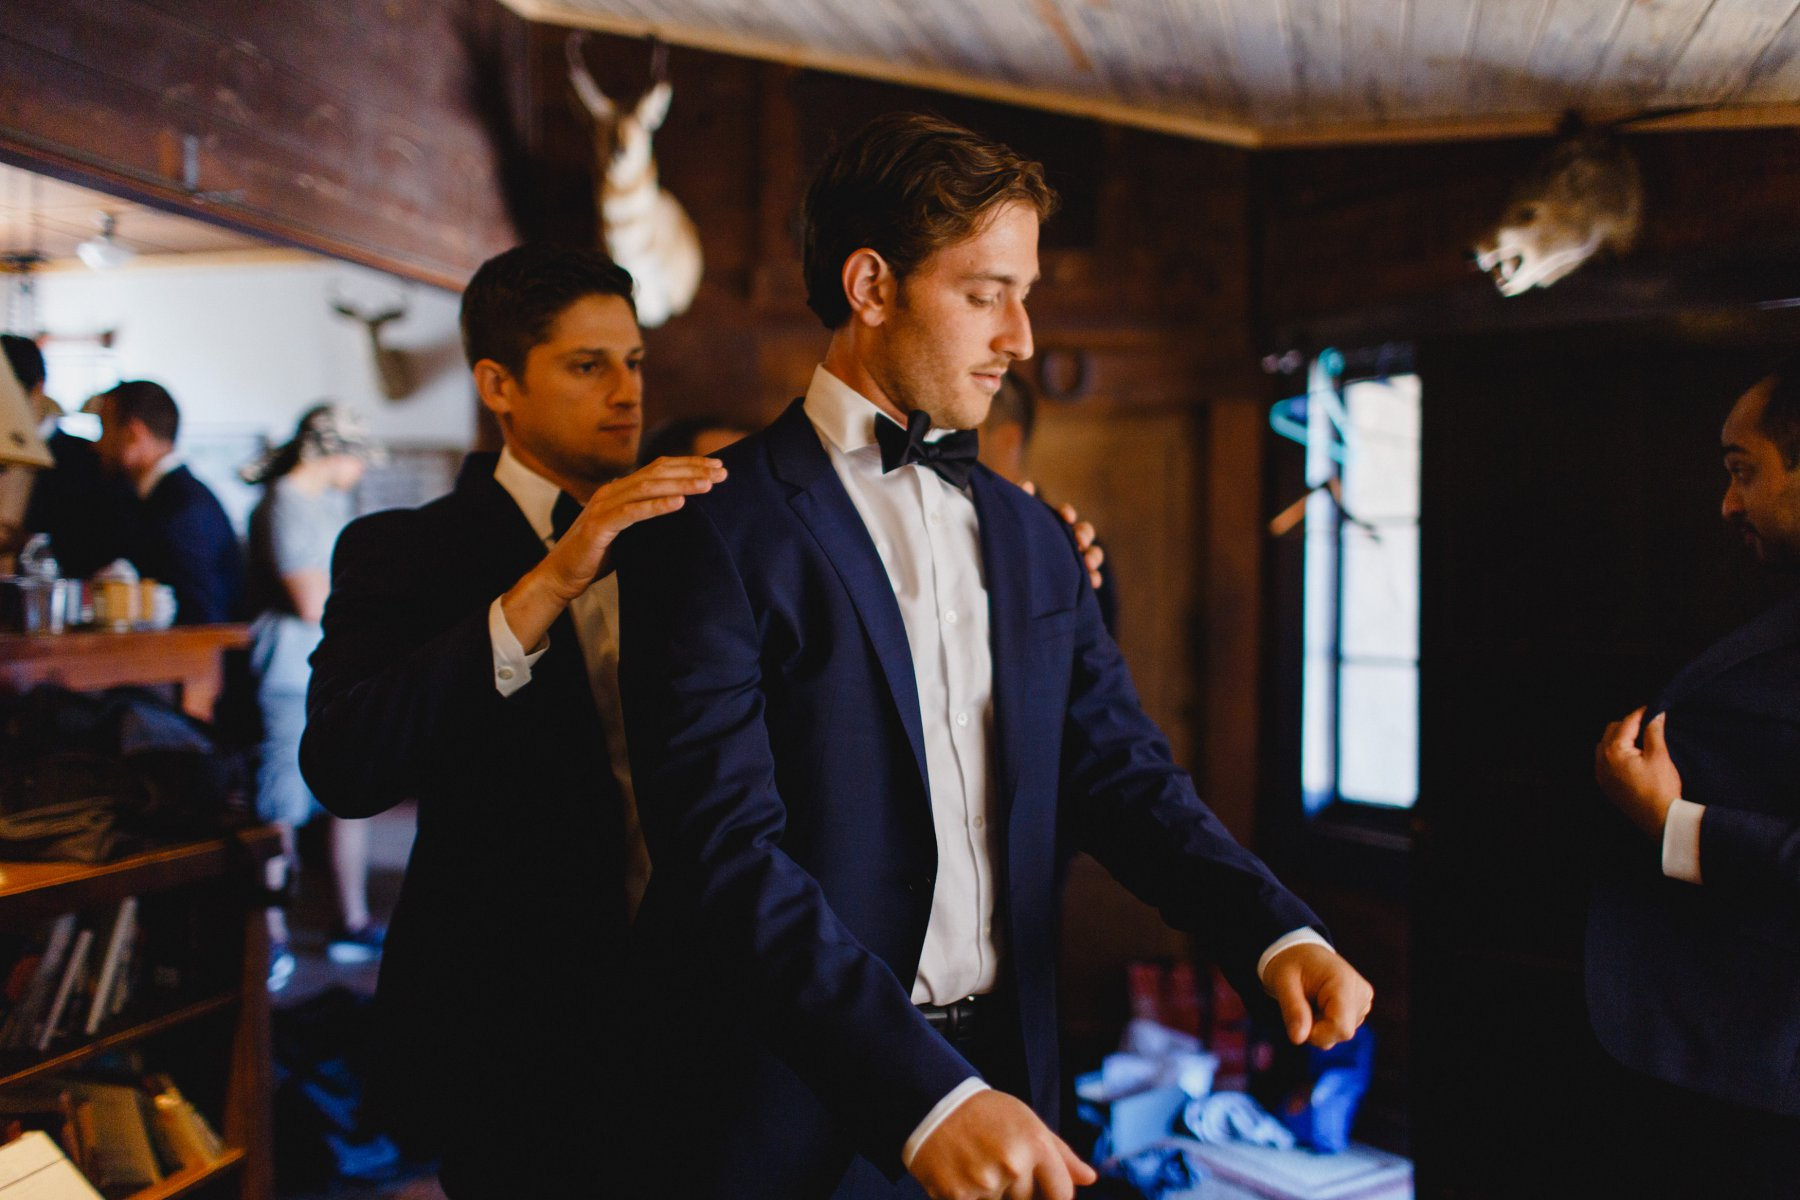 groom getting ready at Saguaro Lake Ranch wedding